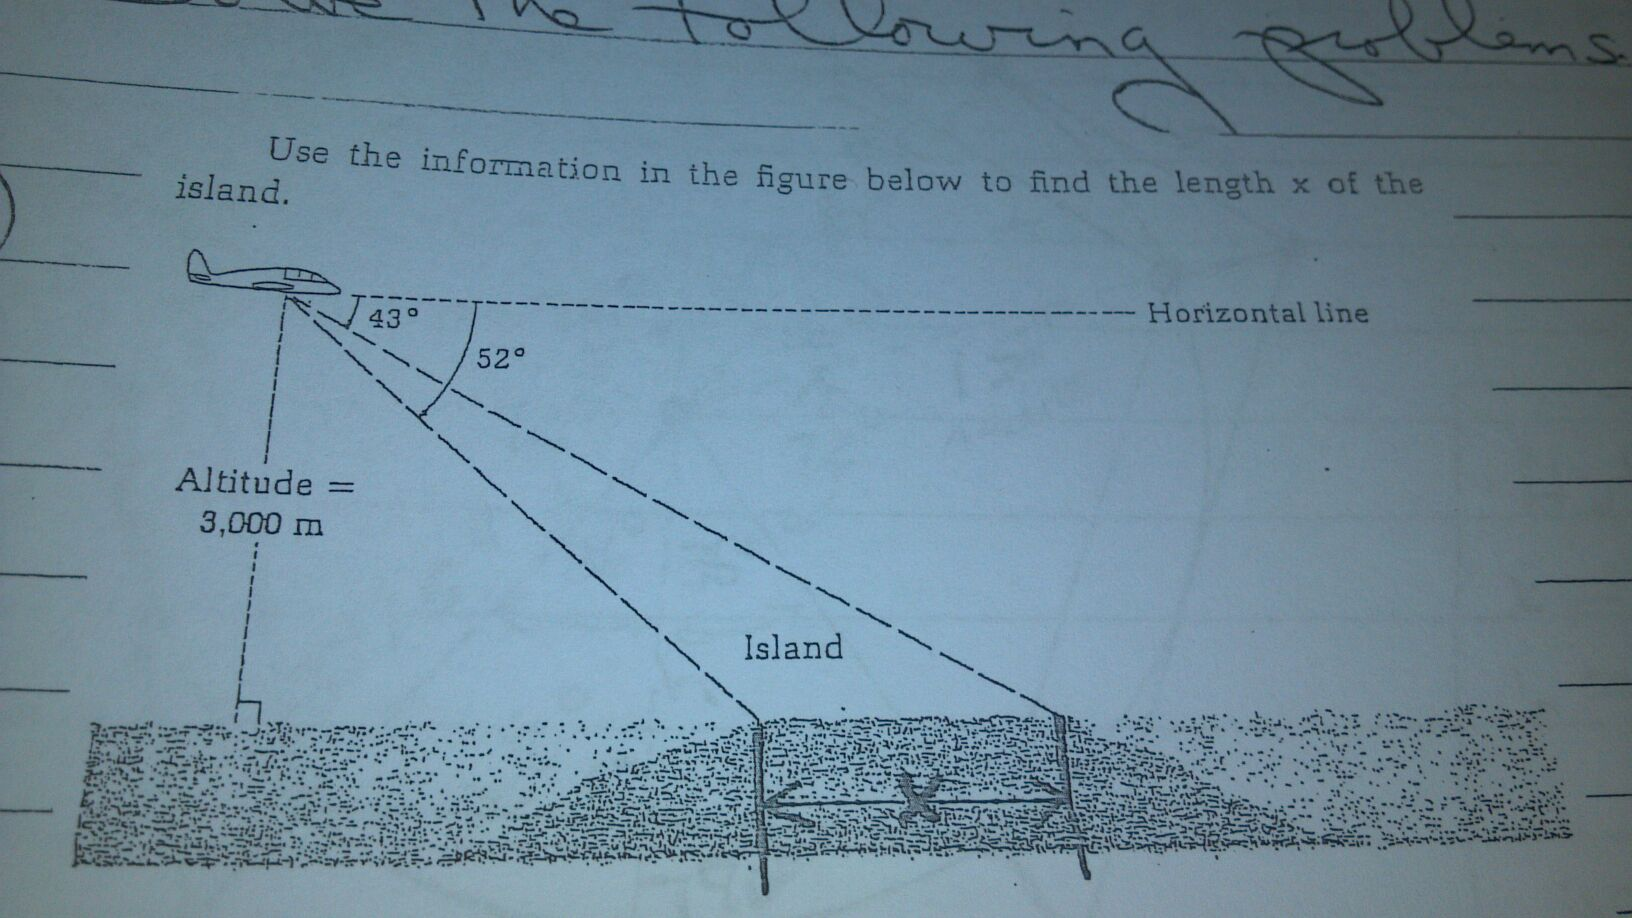 Use the information in the figure below to find th